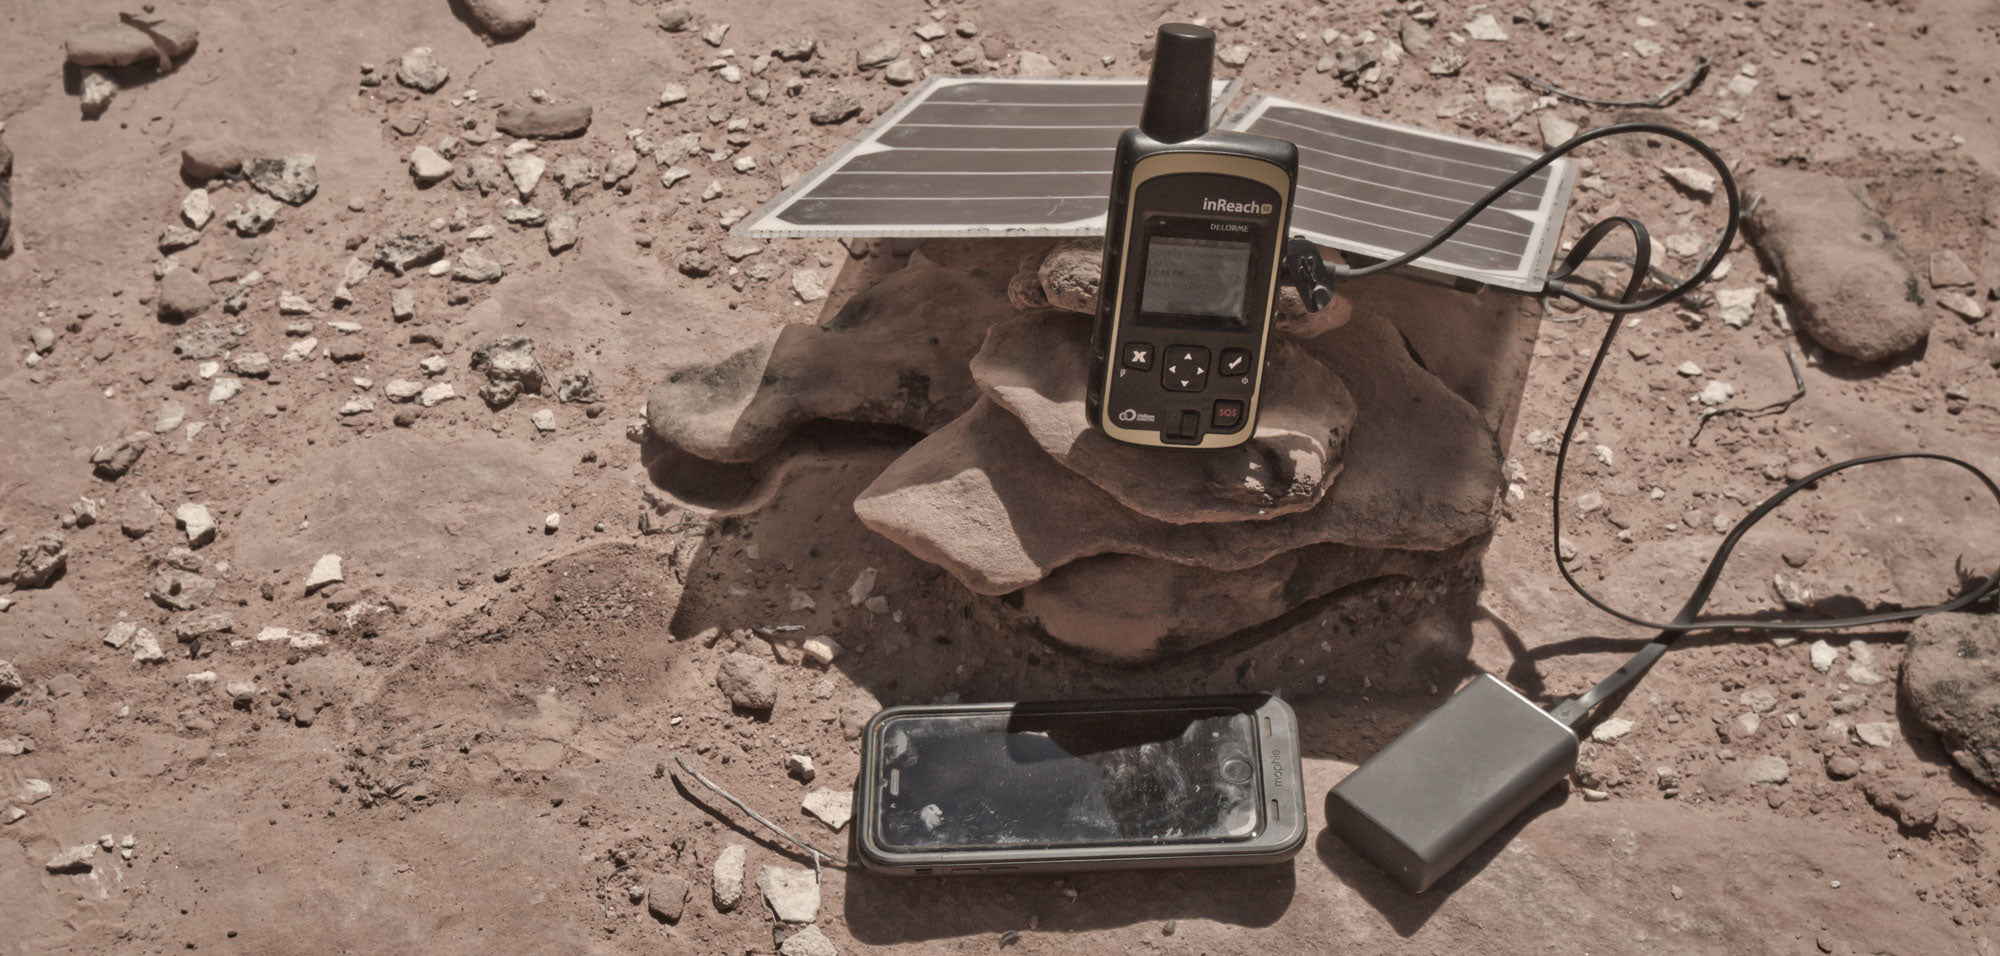 The iPhone 6 weighs 4.5 oz. and has a 1334 x 750 pixel screen. The DeLorme inReach, currently the best handheld GPS, weighs 6.7 oz.